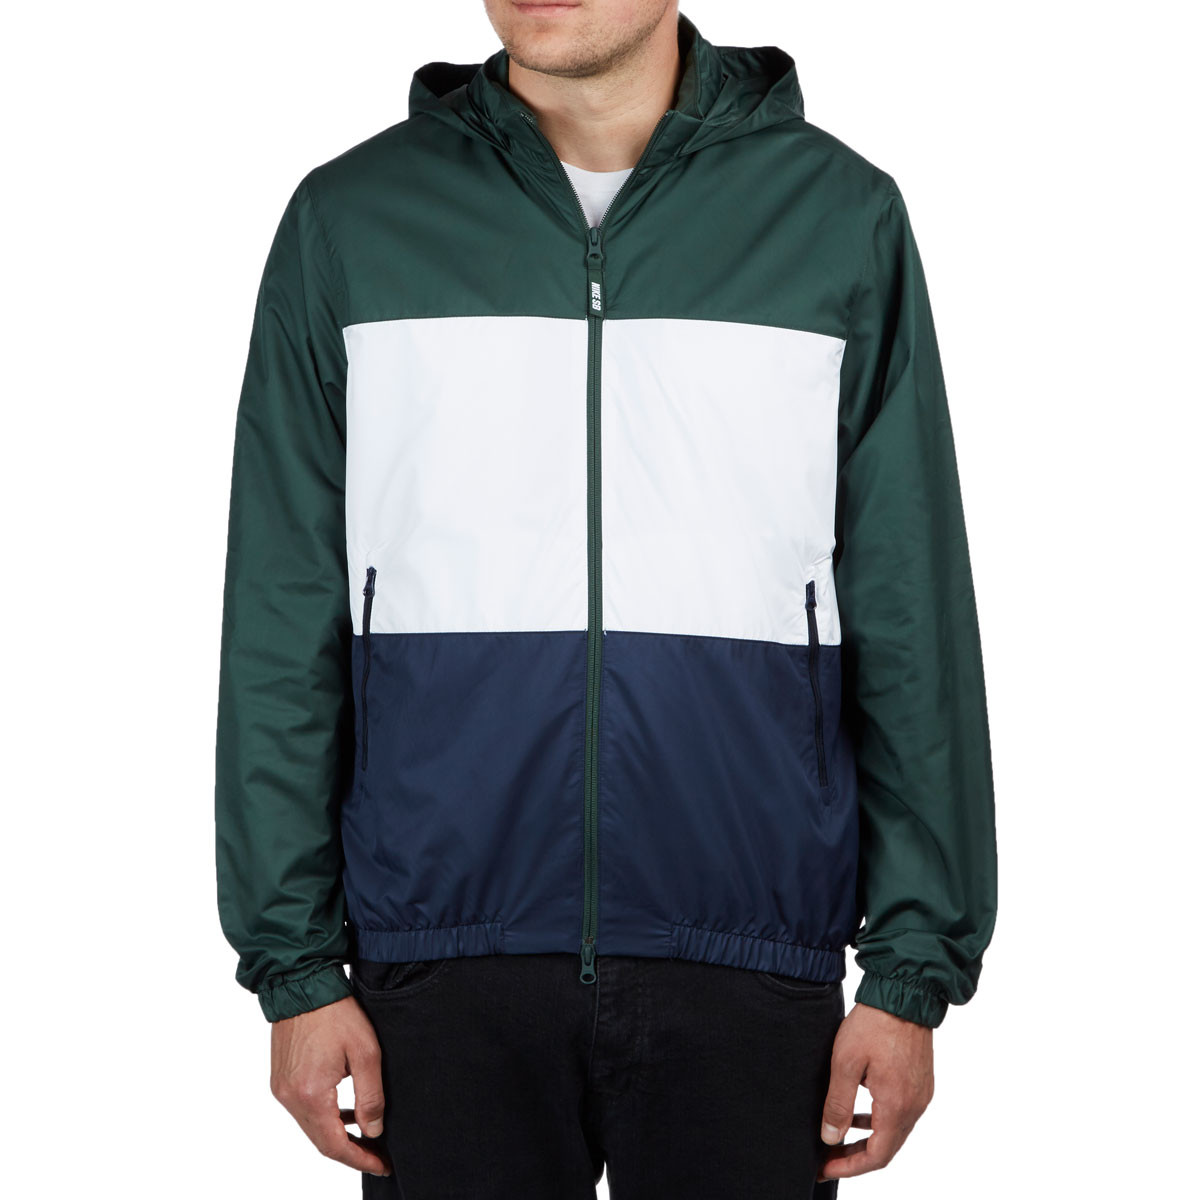 fashion style casual shoes classic styles Nike SB Dry-Fit Hooded Stripe Jacket - Midnight Green/White/Obsidian